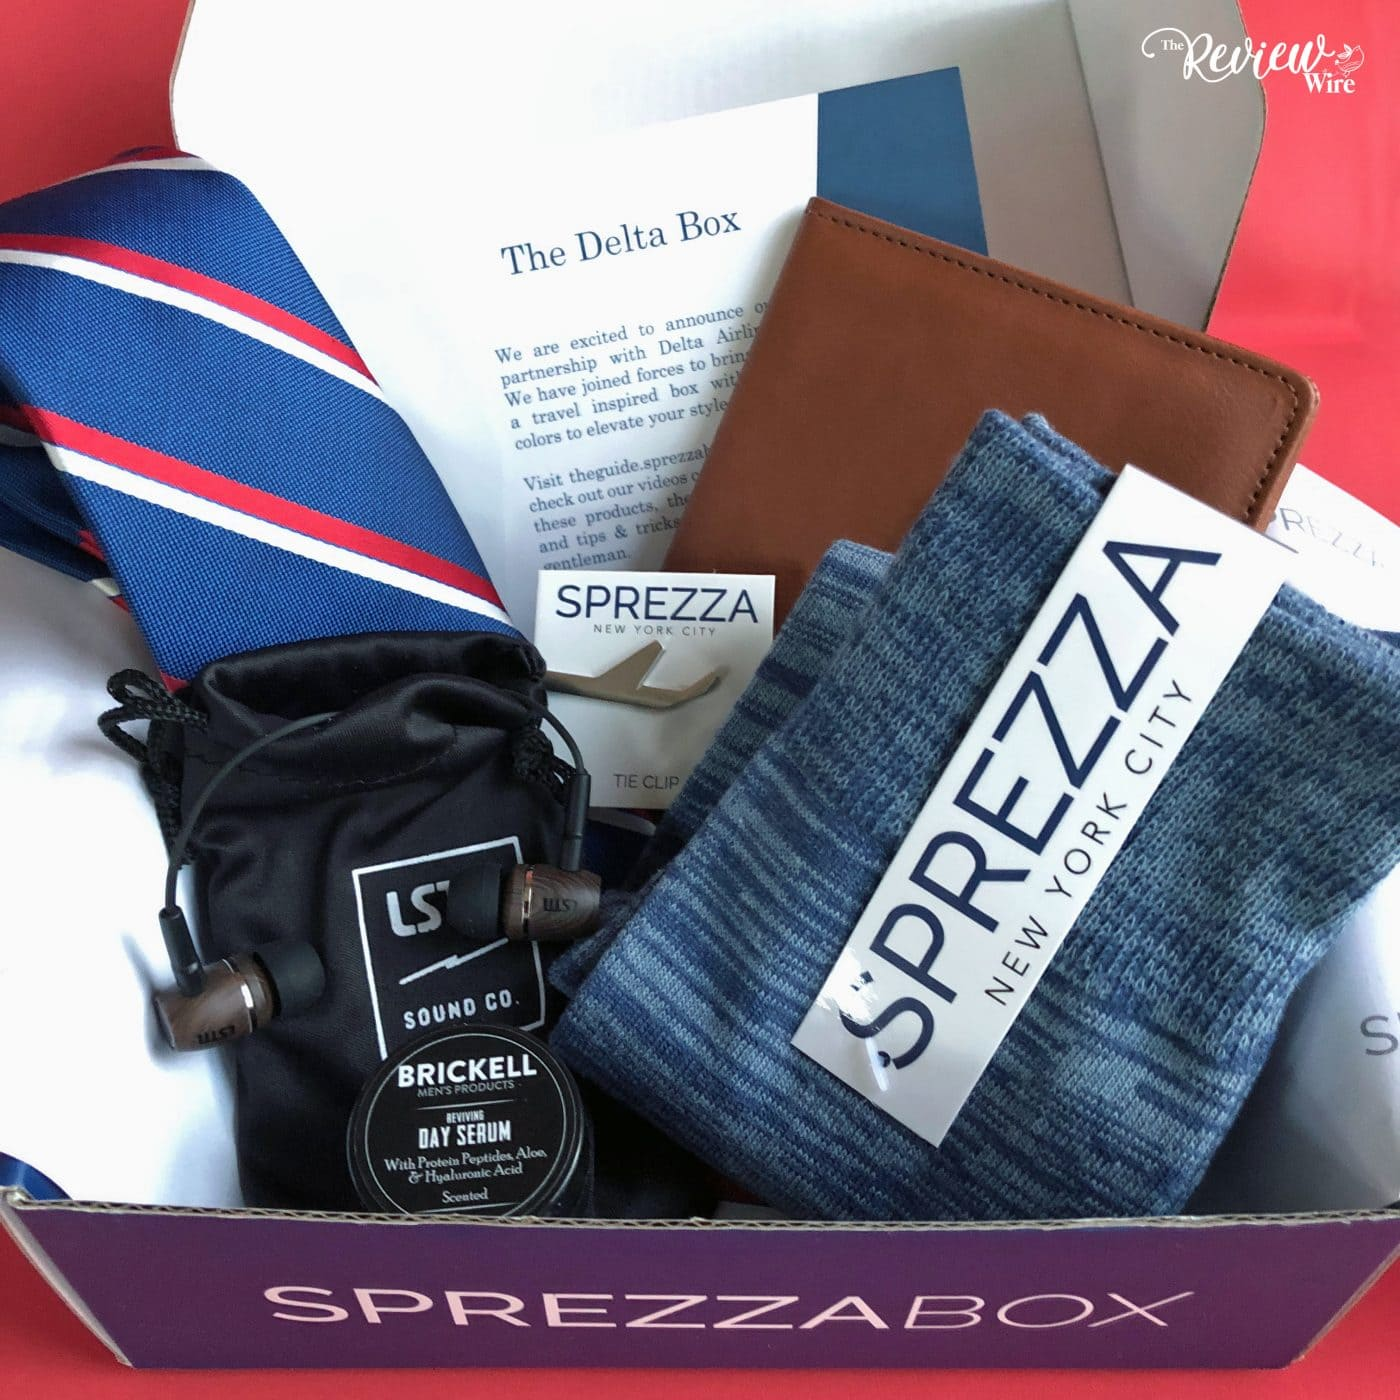 Delta SprezzaBox